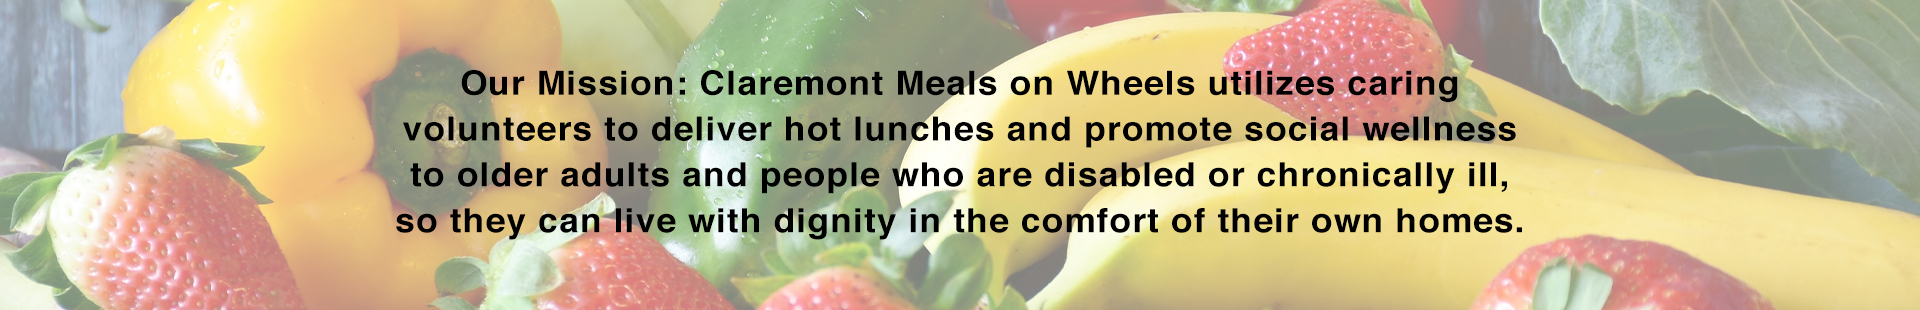 Our Mission: Claremont Meals on Wheels utilizes caring volunteers to deliver hot lunches and promote social wellness to older adults and people who are disabled or chronically ill, so they can live with dignity in the comfort of their own homes.